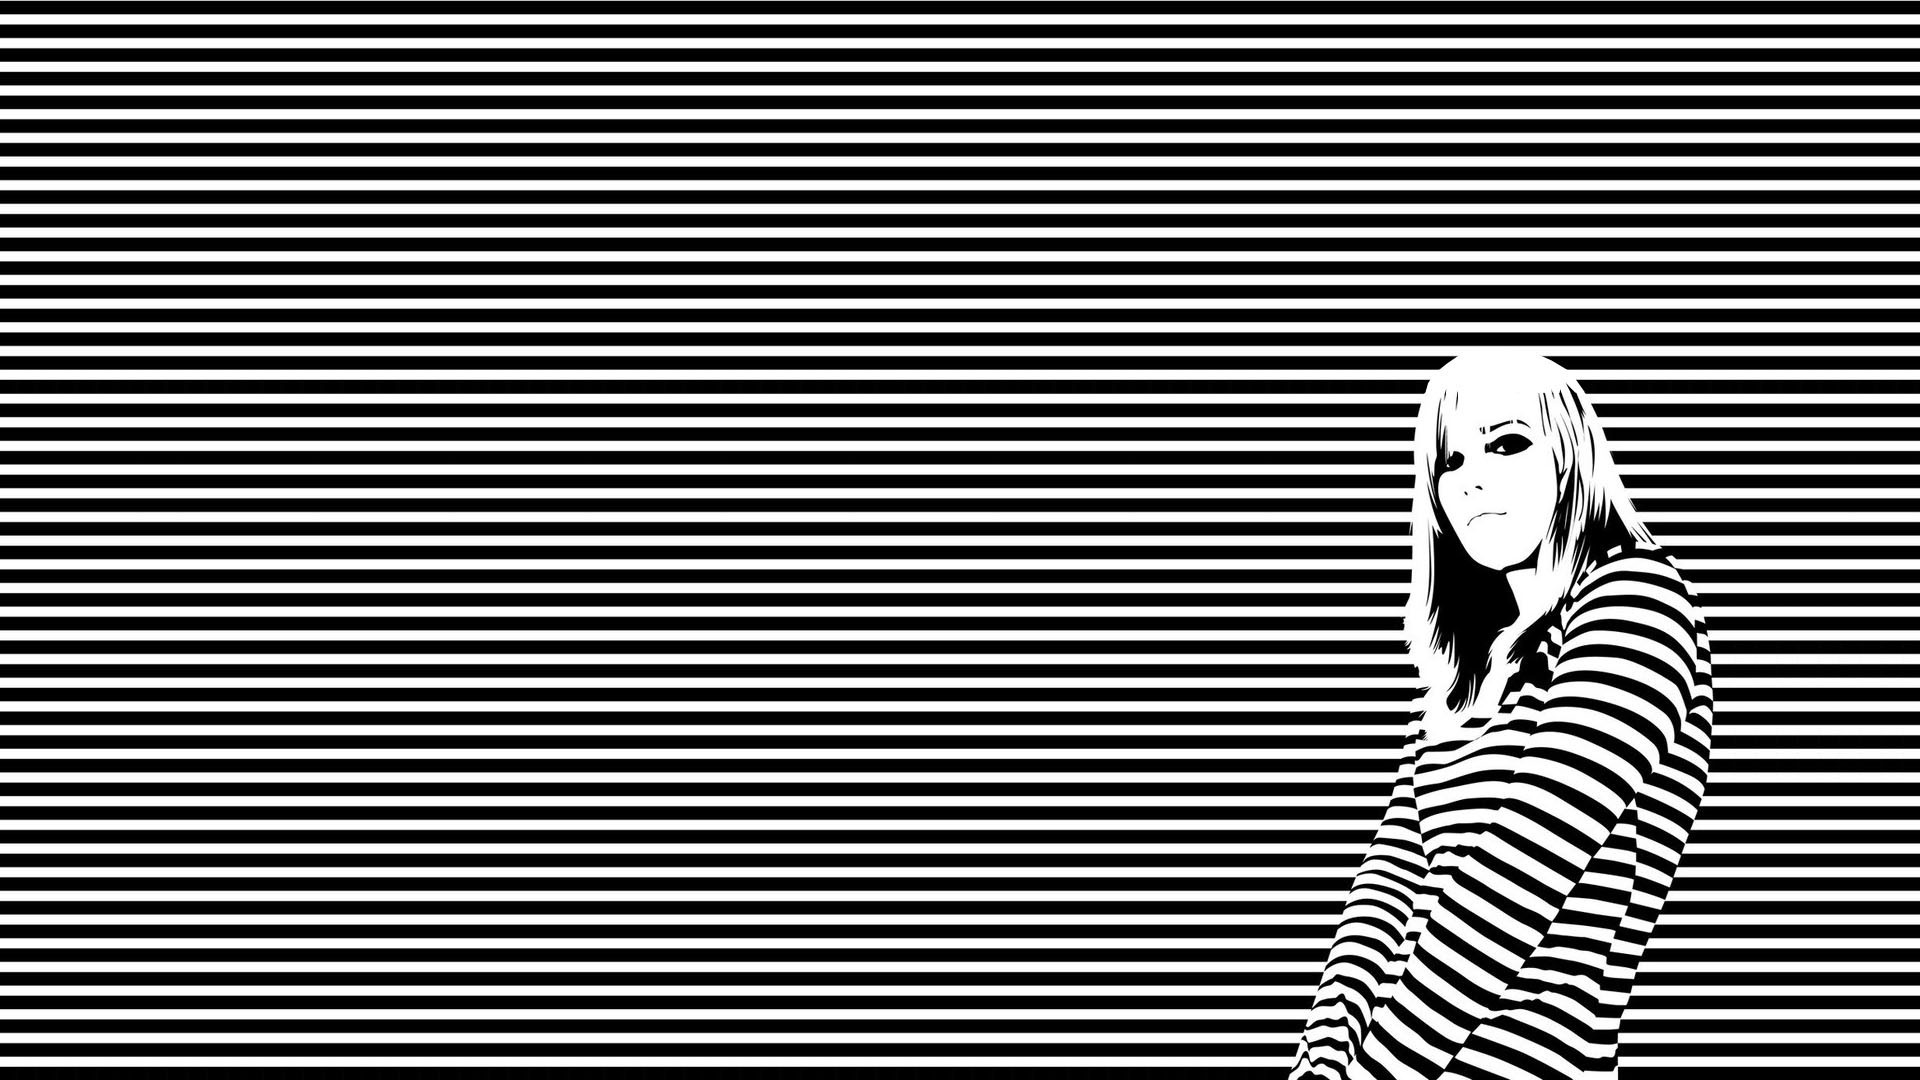 black and white stripes1jpg - photo #24